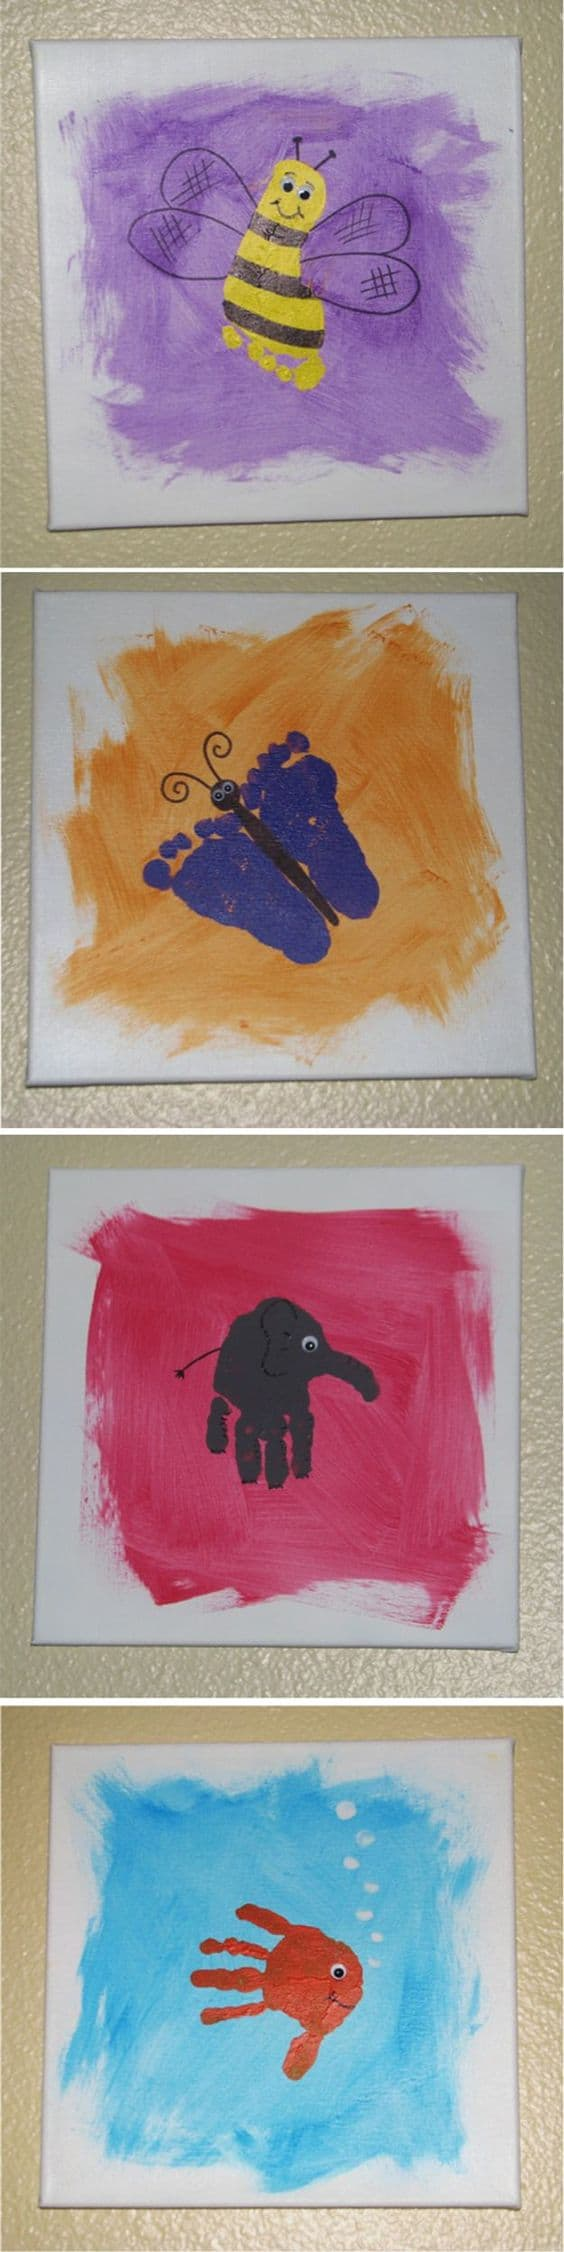 Simple Paintings For Kids